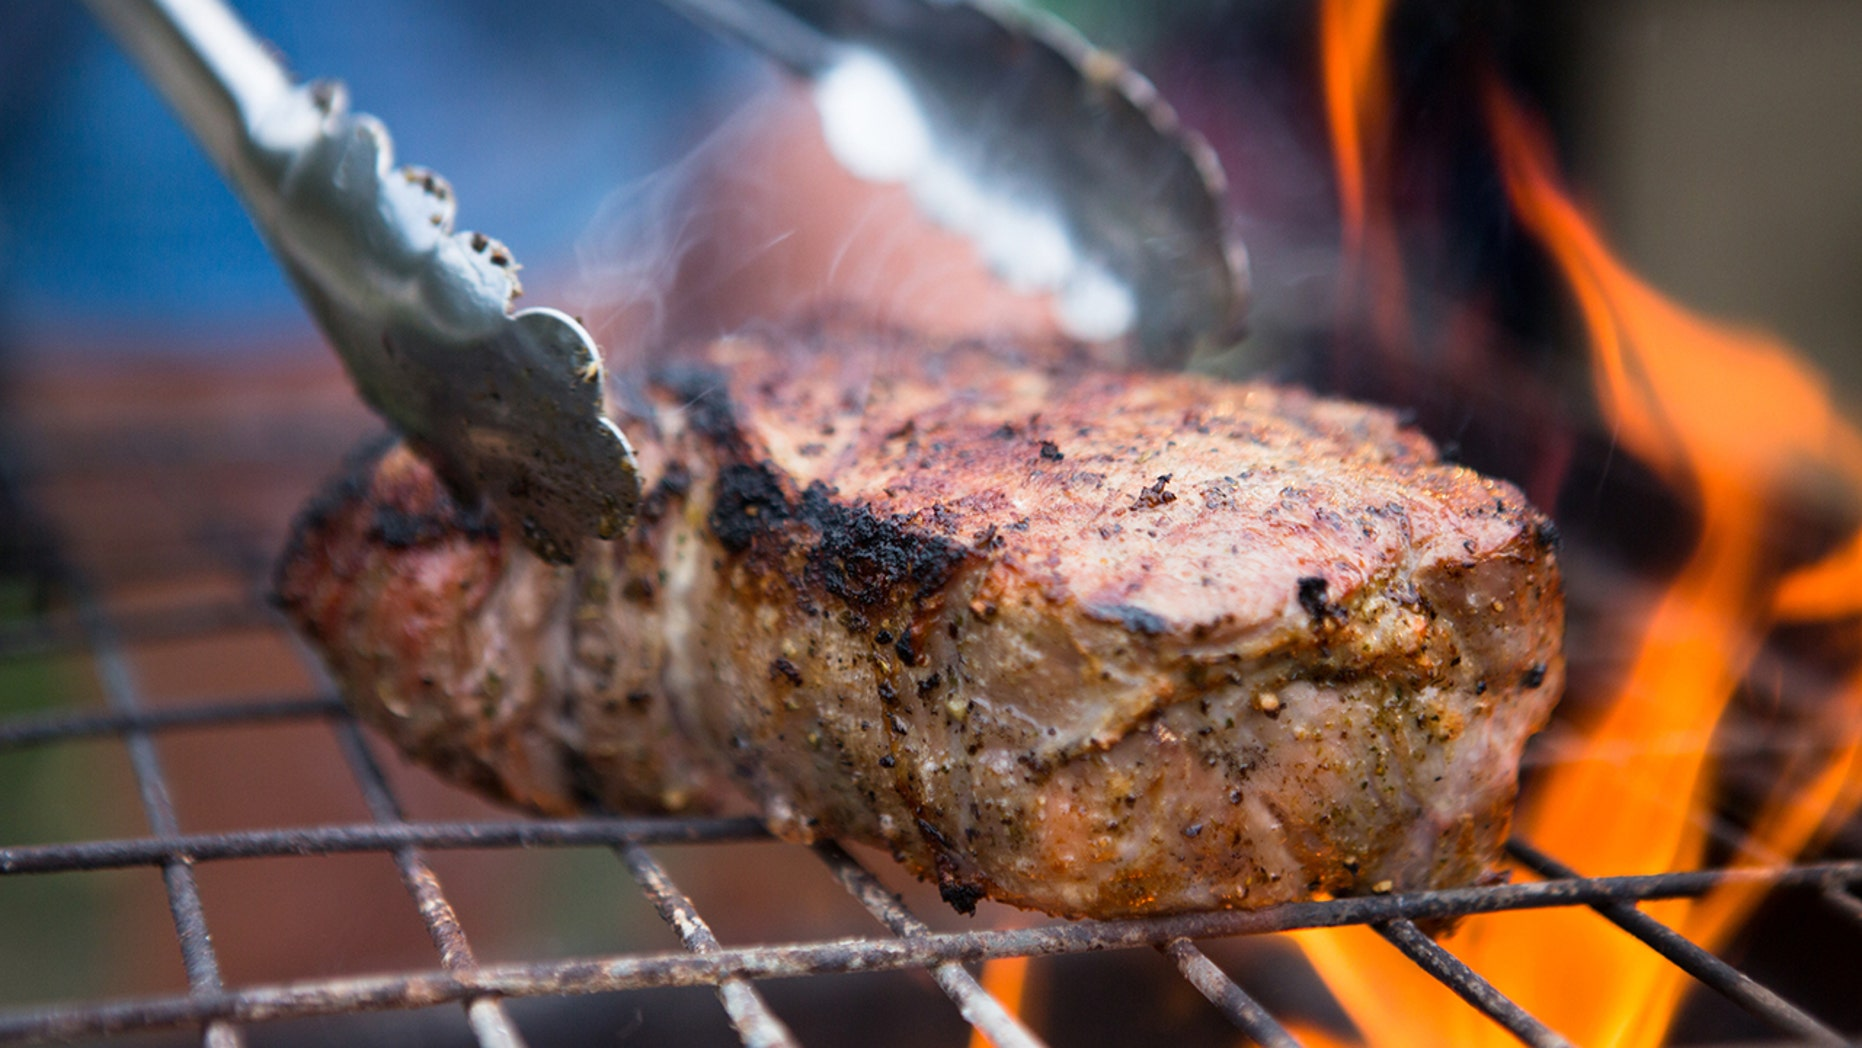 Don't be afraid to flip that steak more than once. It actually might cook faster and more evenly.